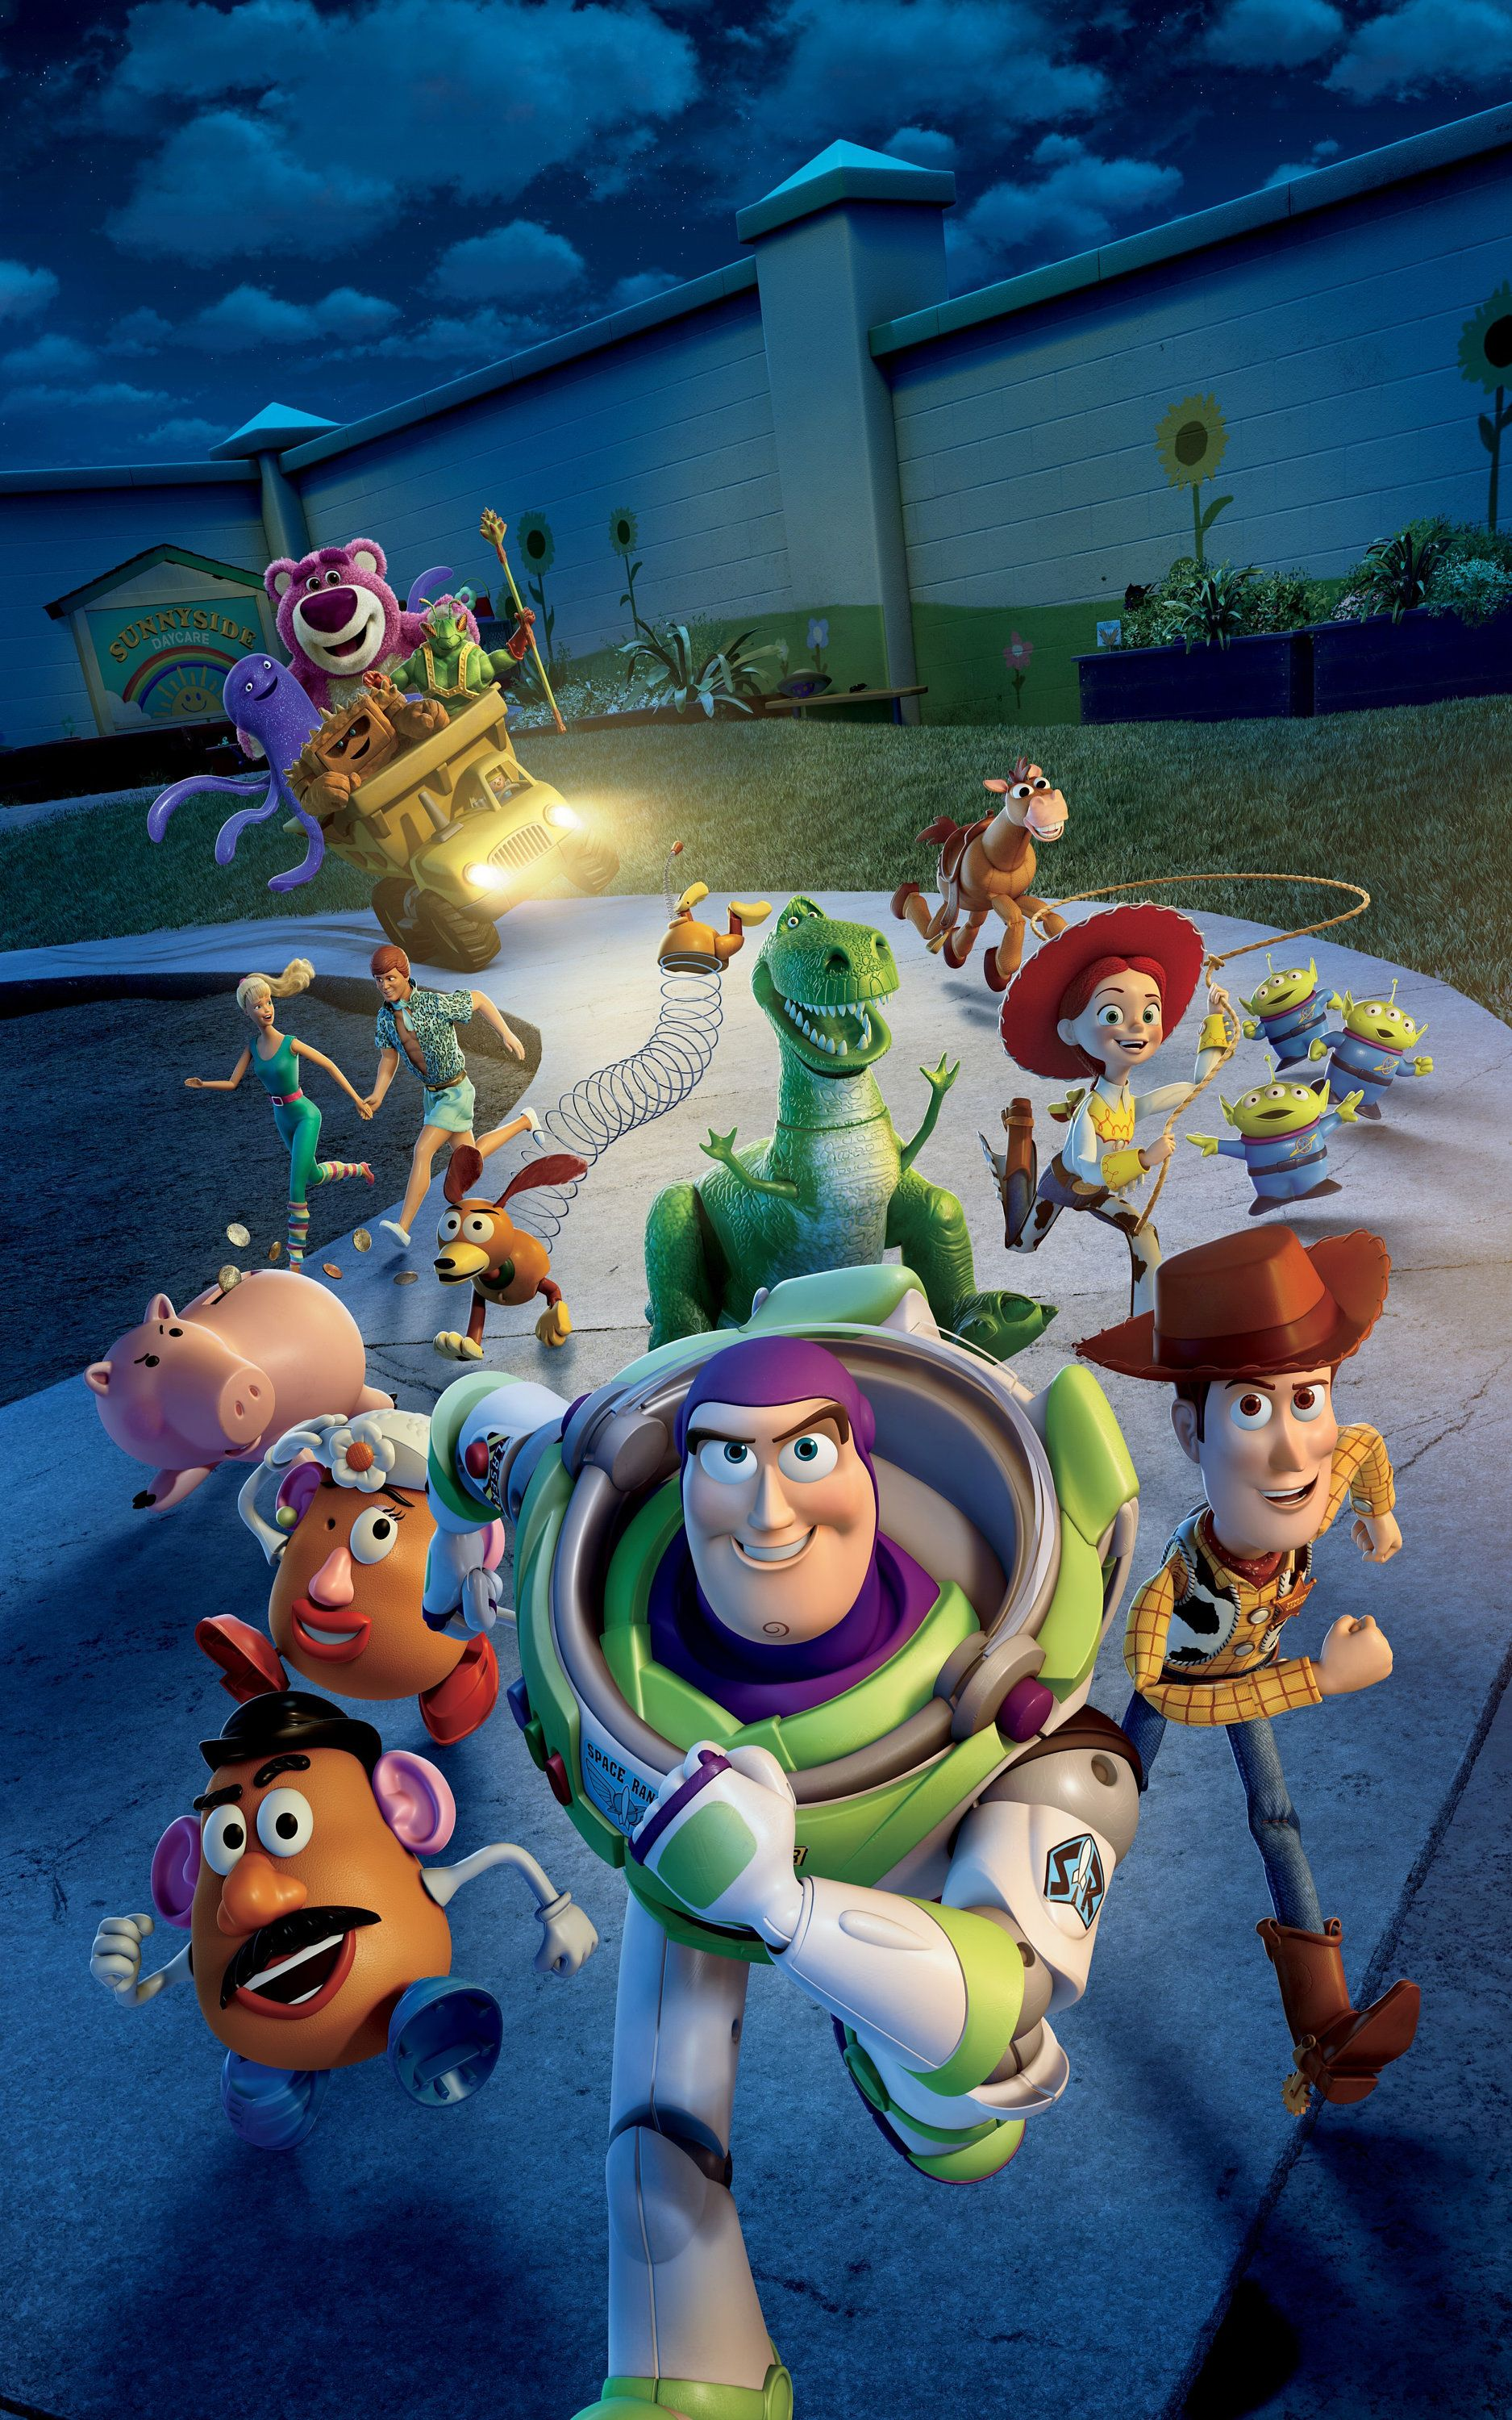 Toy Story 3 (2010) Poster Wall art Print